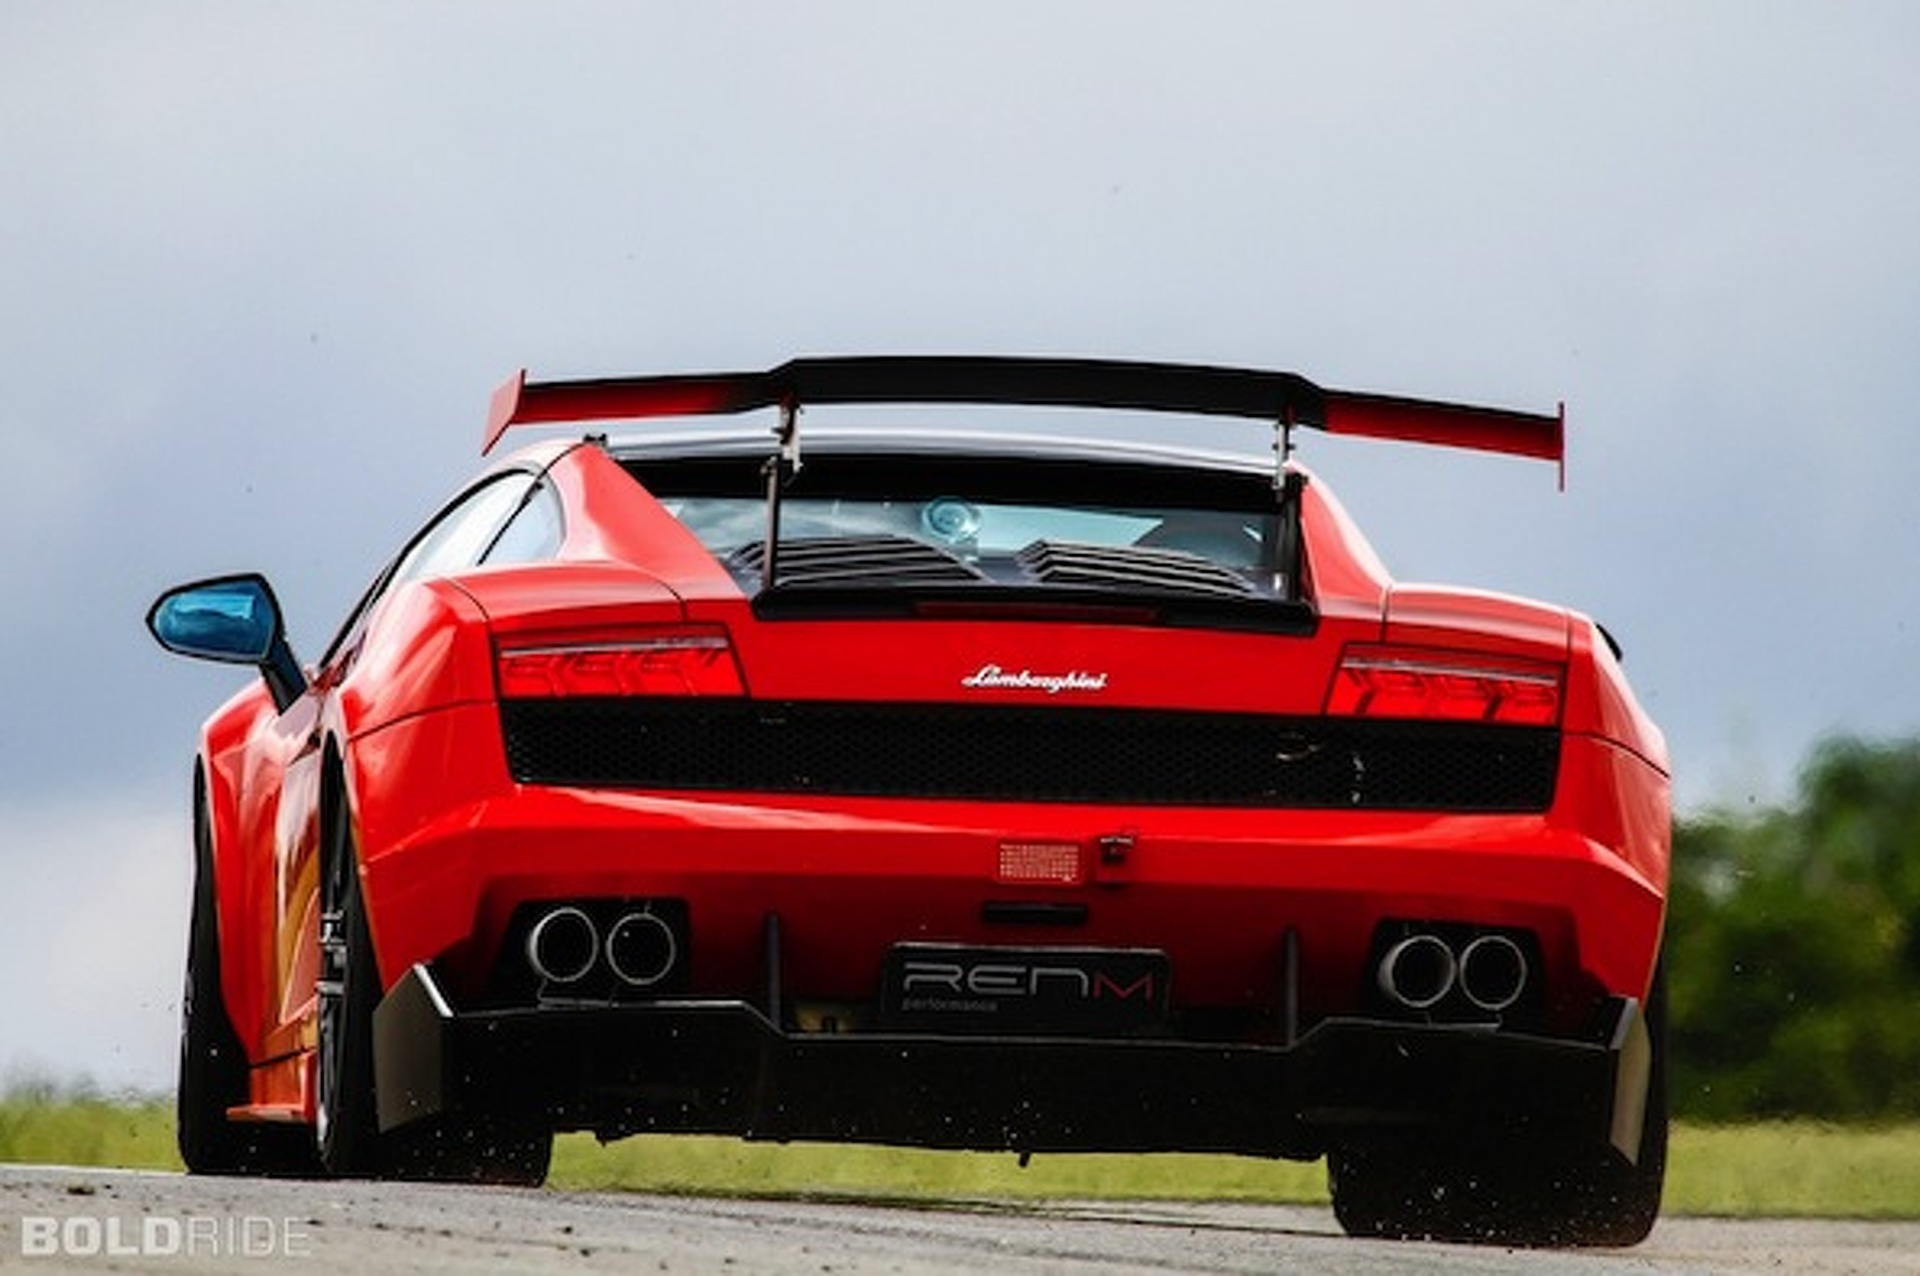 Bold Ride of the Week: RENM Lamborghini Gallardo STS-700